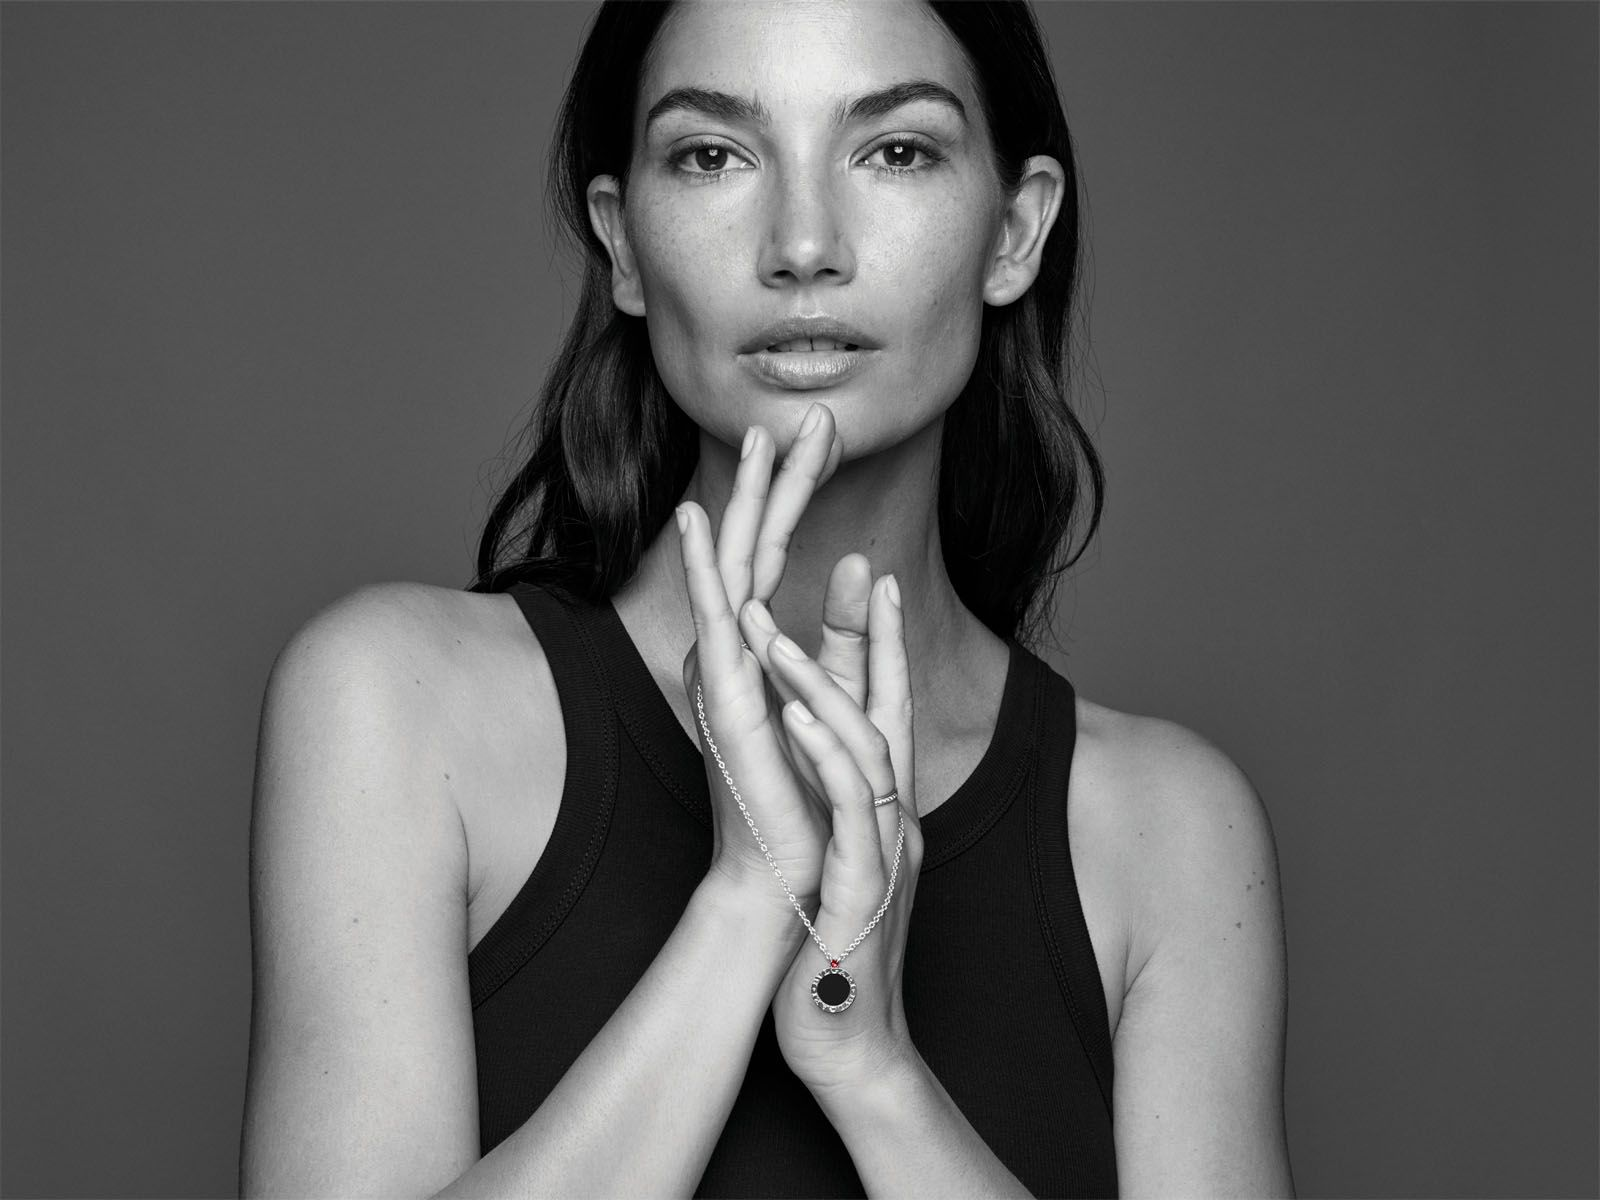 American model Lily Aldridge features in the #GiveHope campaign